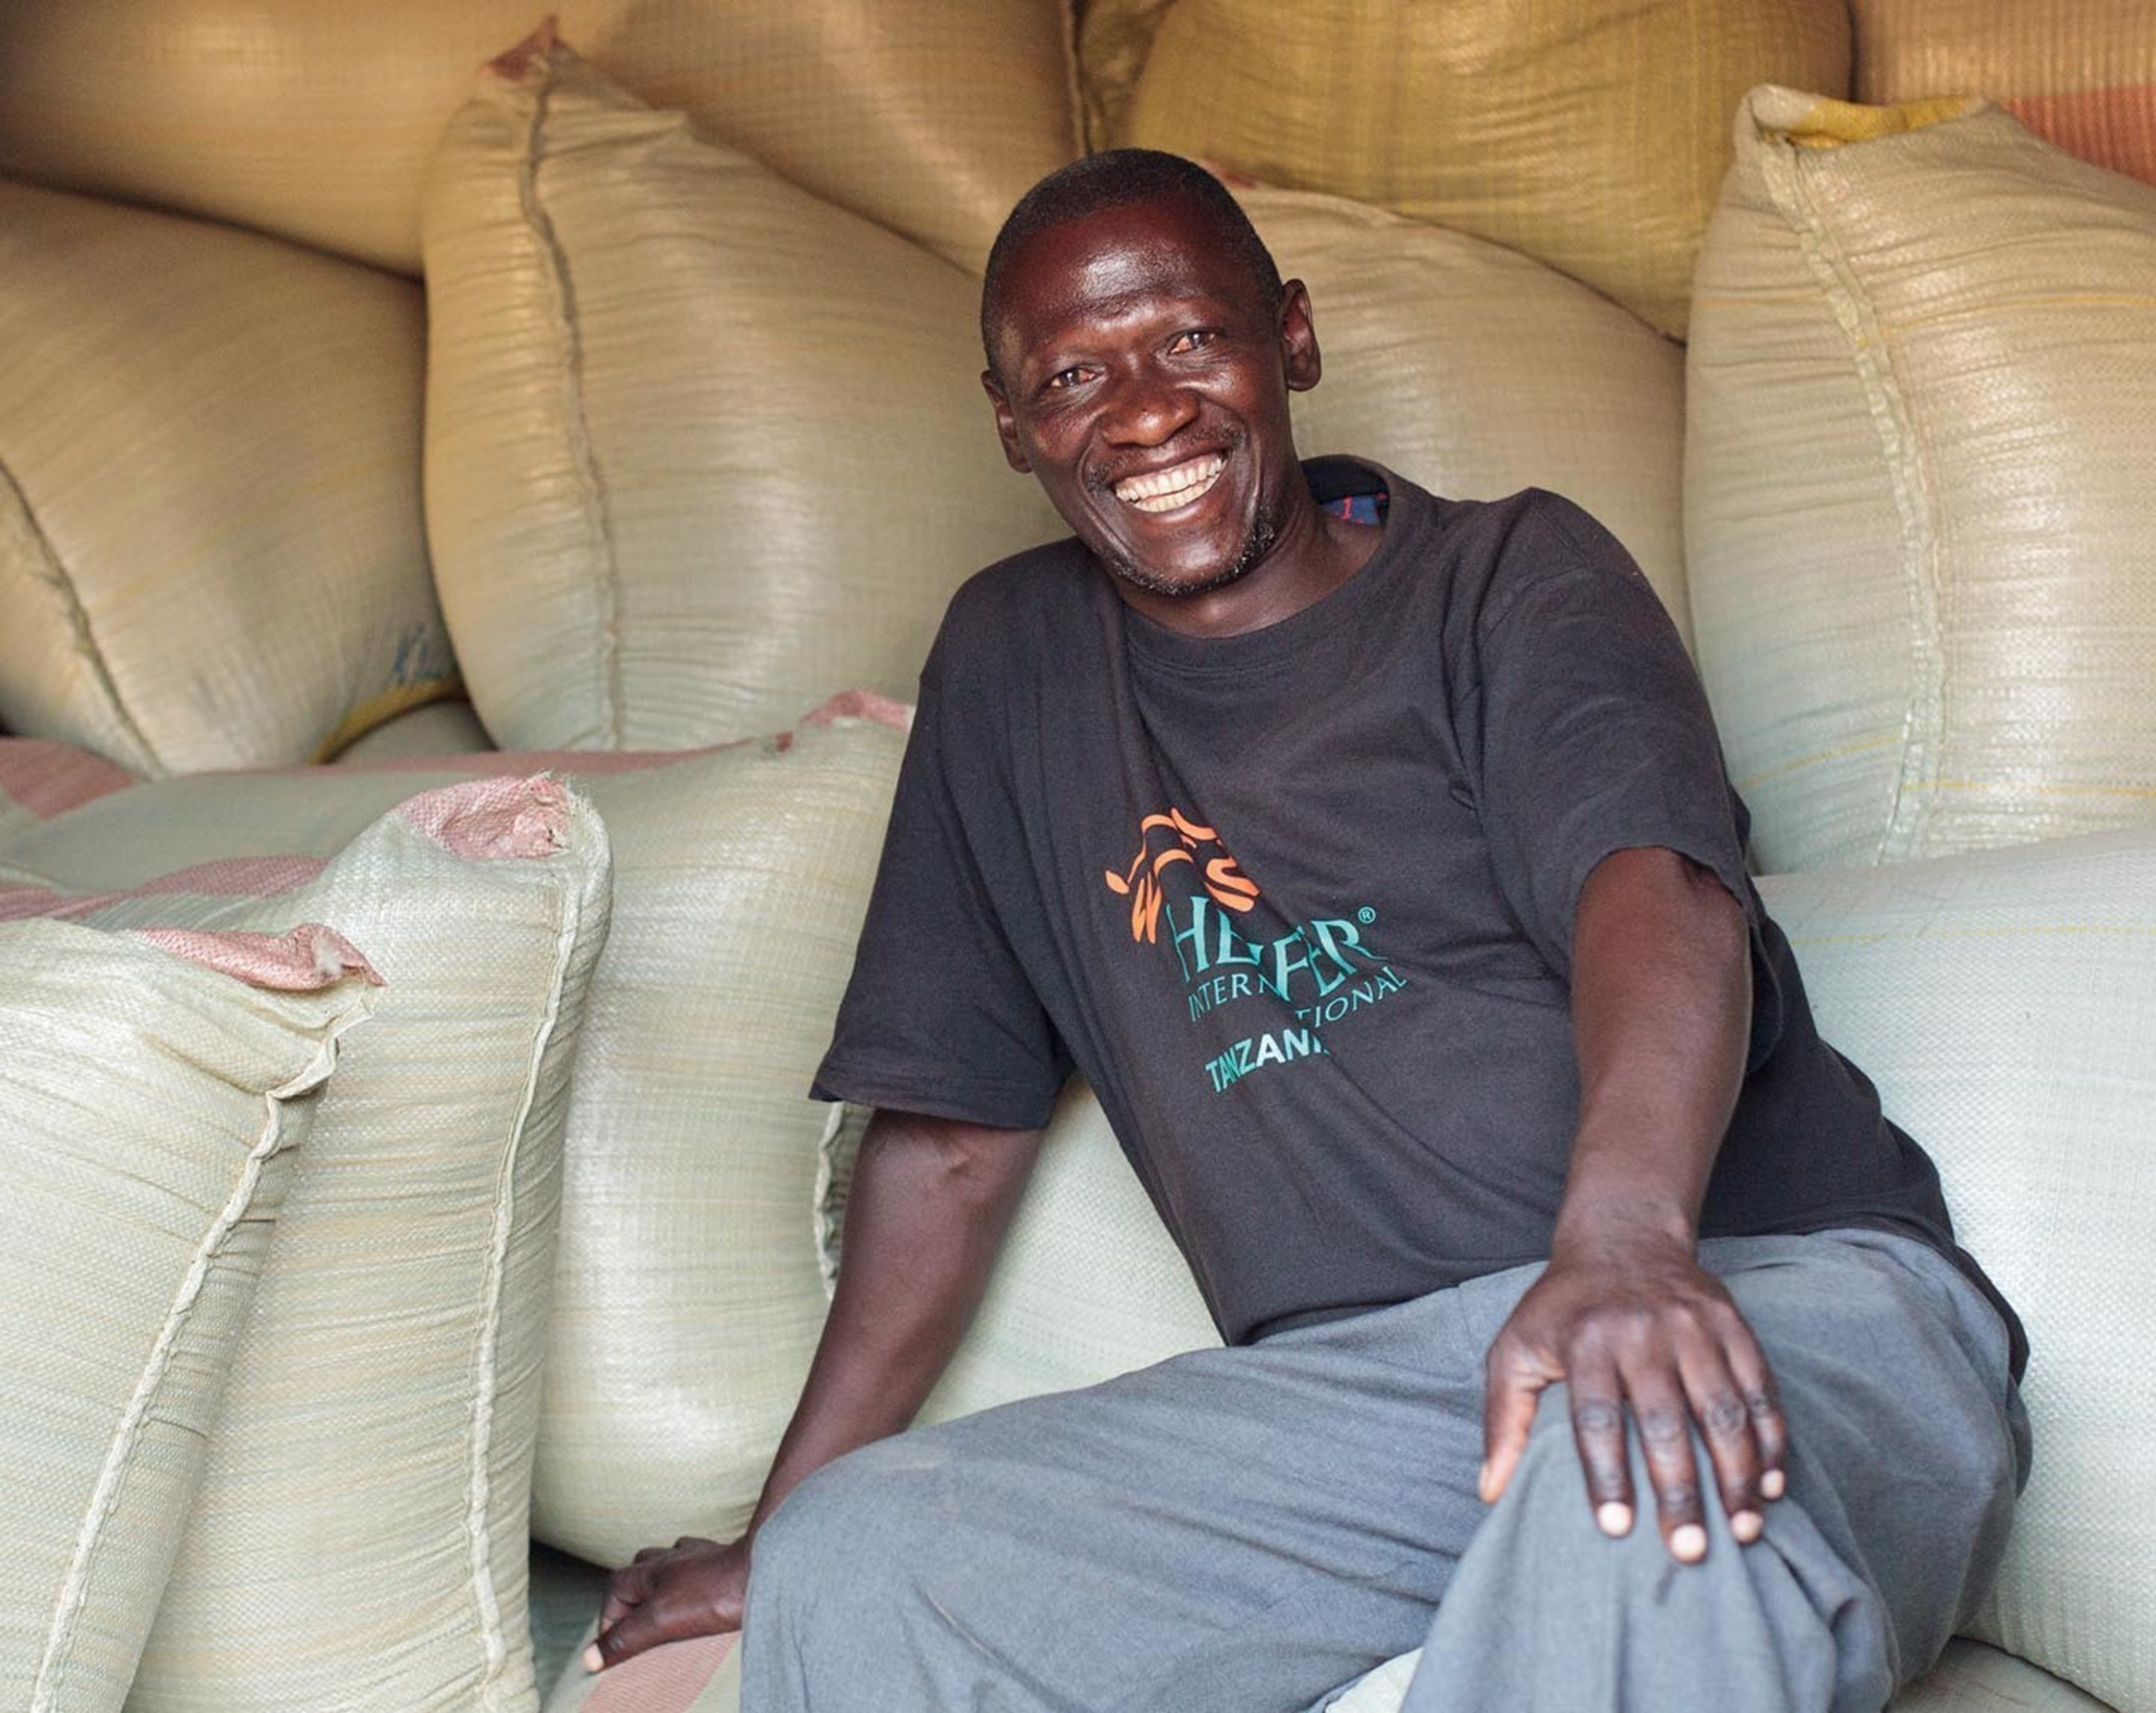 Starbucks Foundation grant will help Heifer International provide assistance to 5,000 coffee farmers and their families in Tanzania.